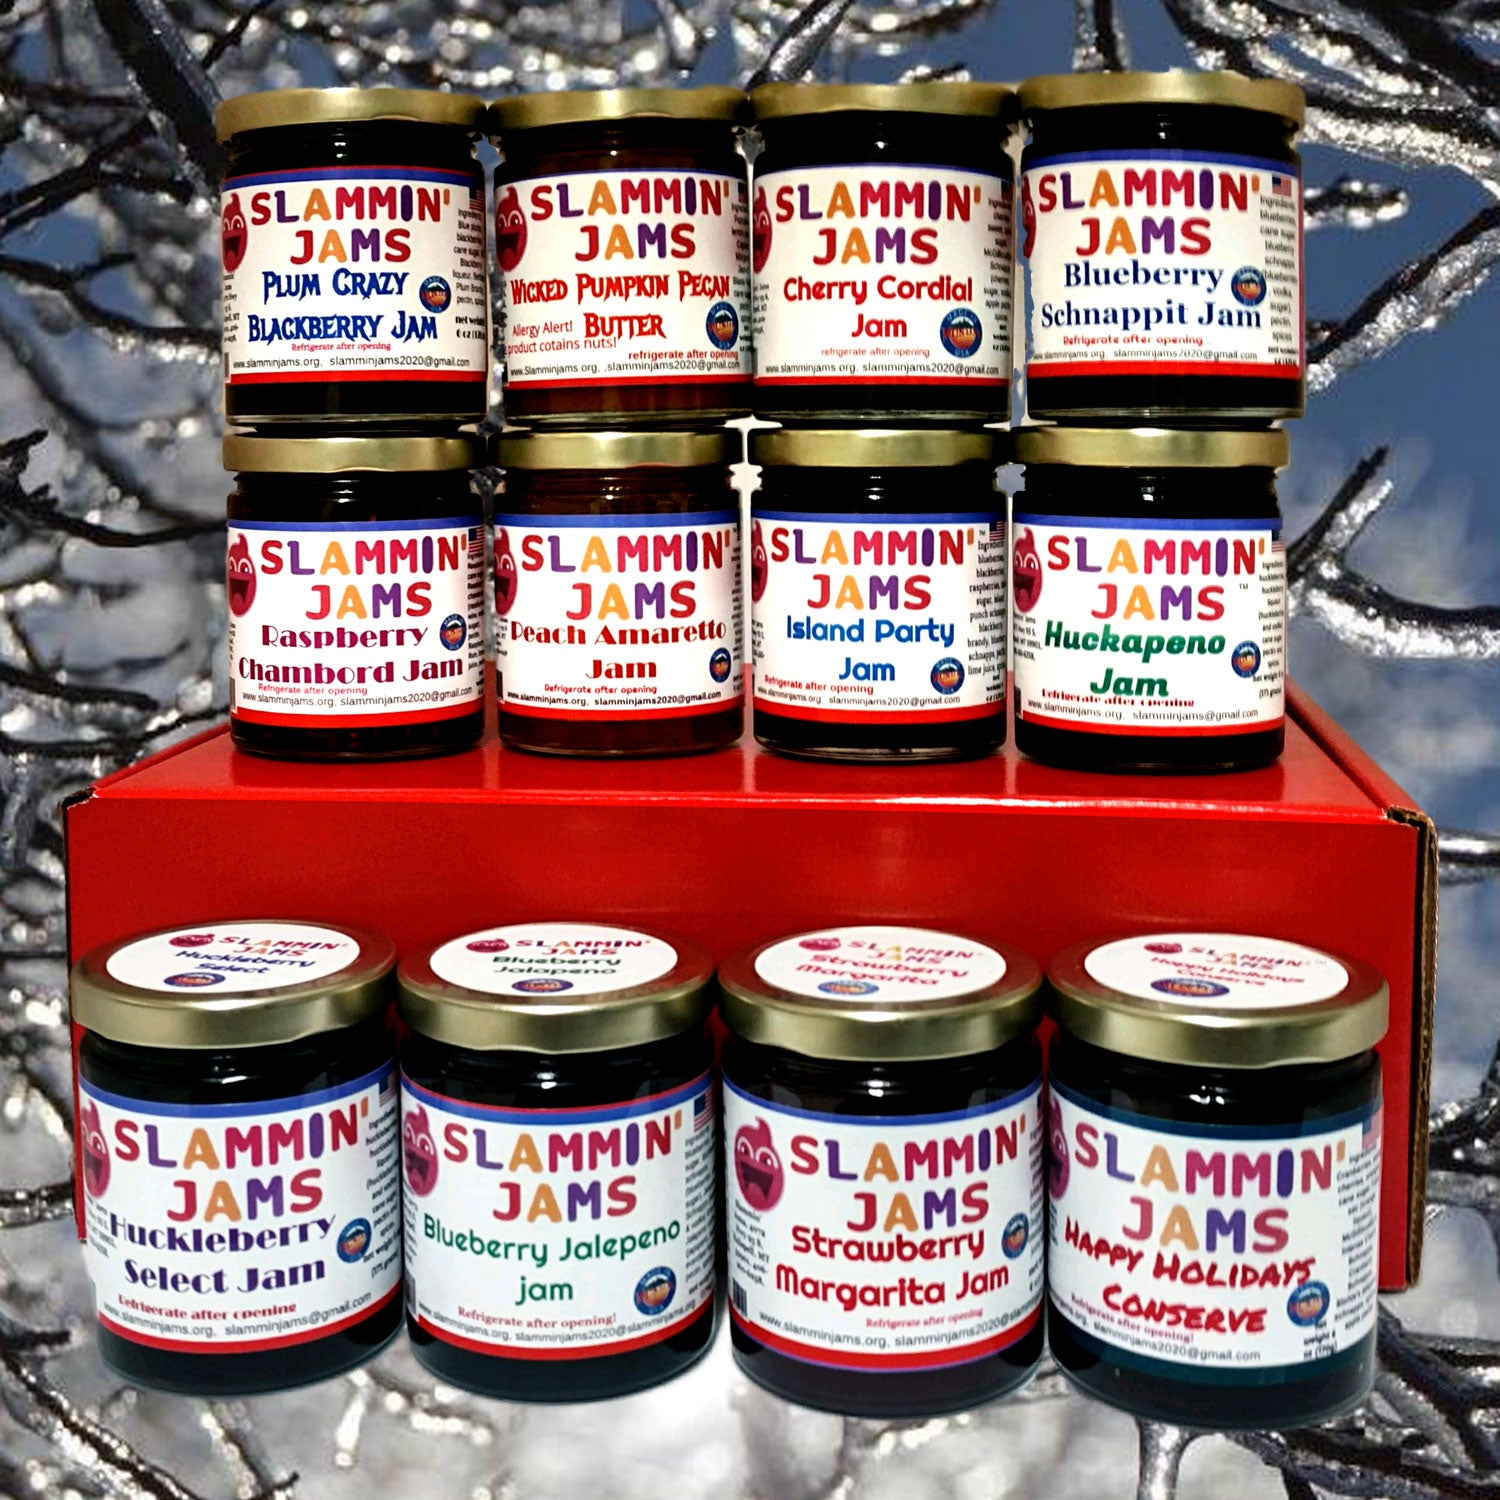 Gift Box of 12 Premium Jams from Slammin' Jams